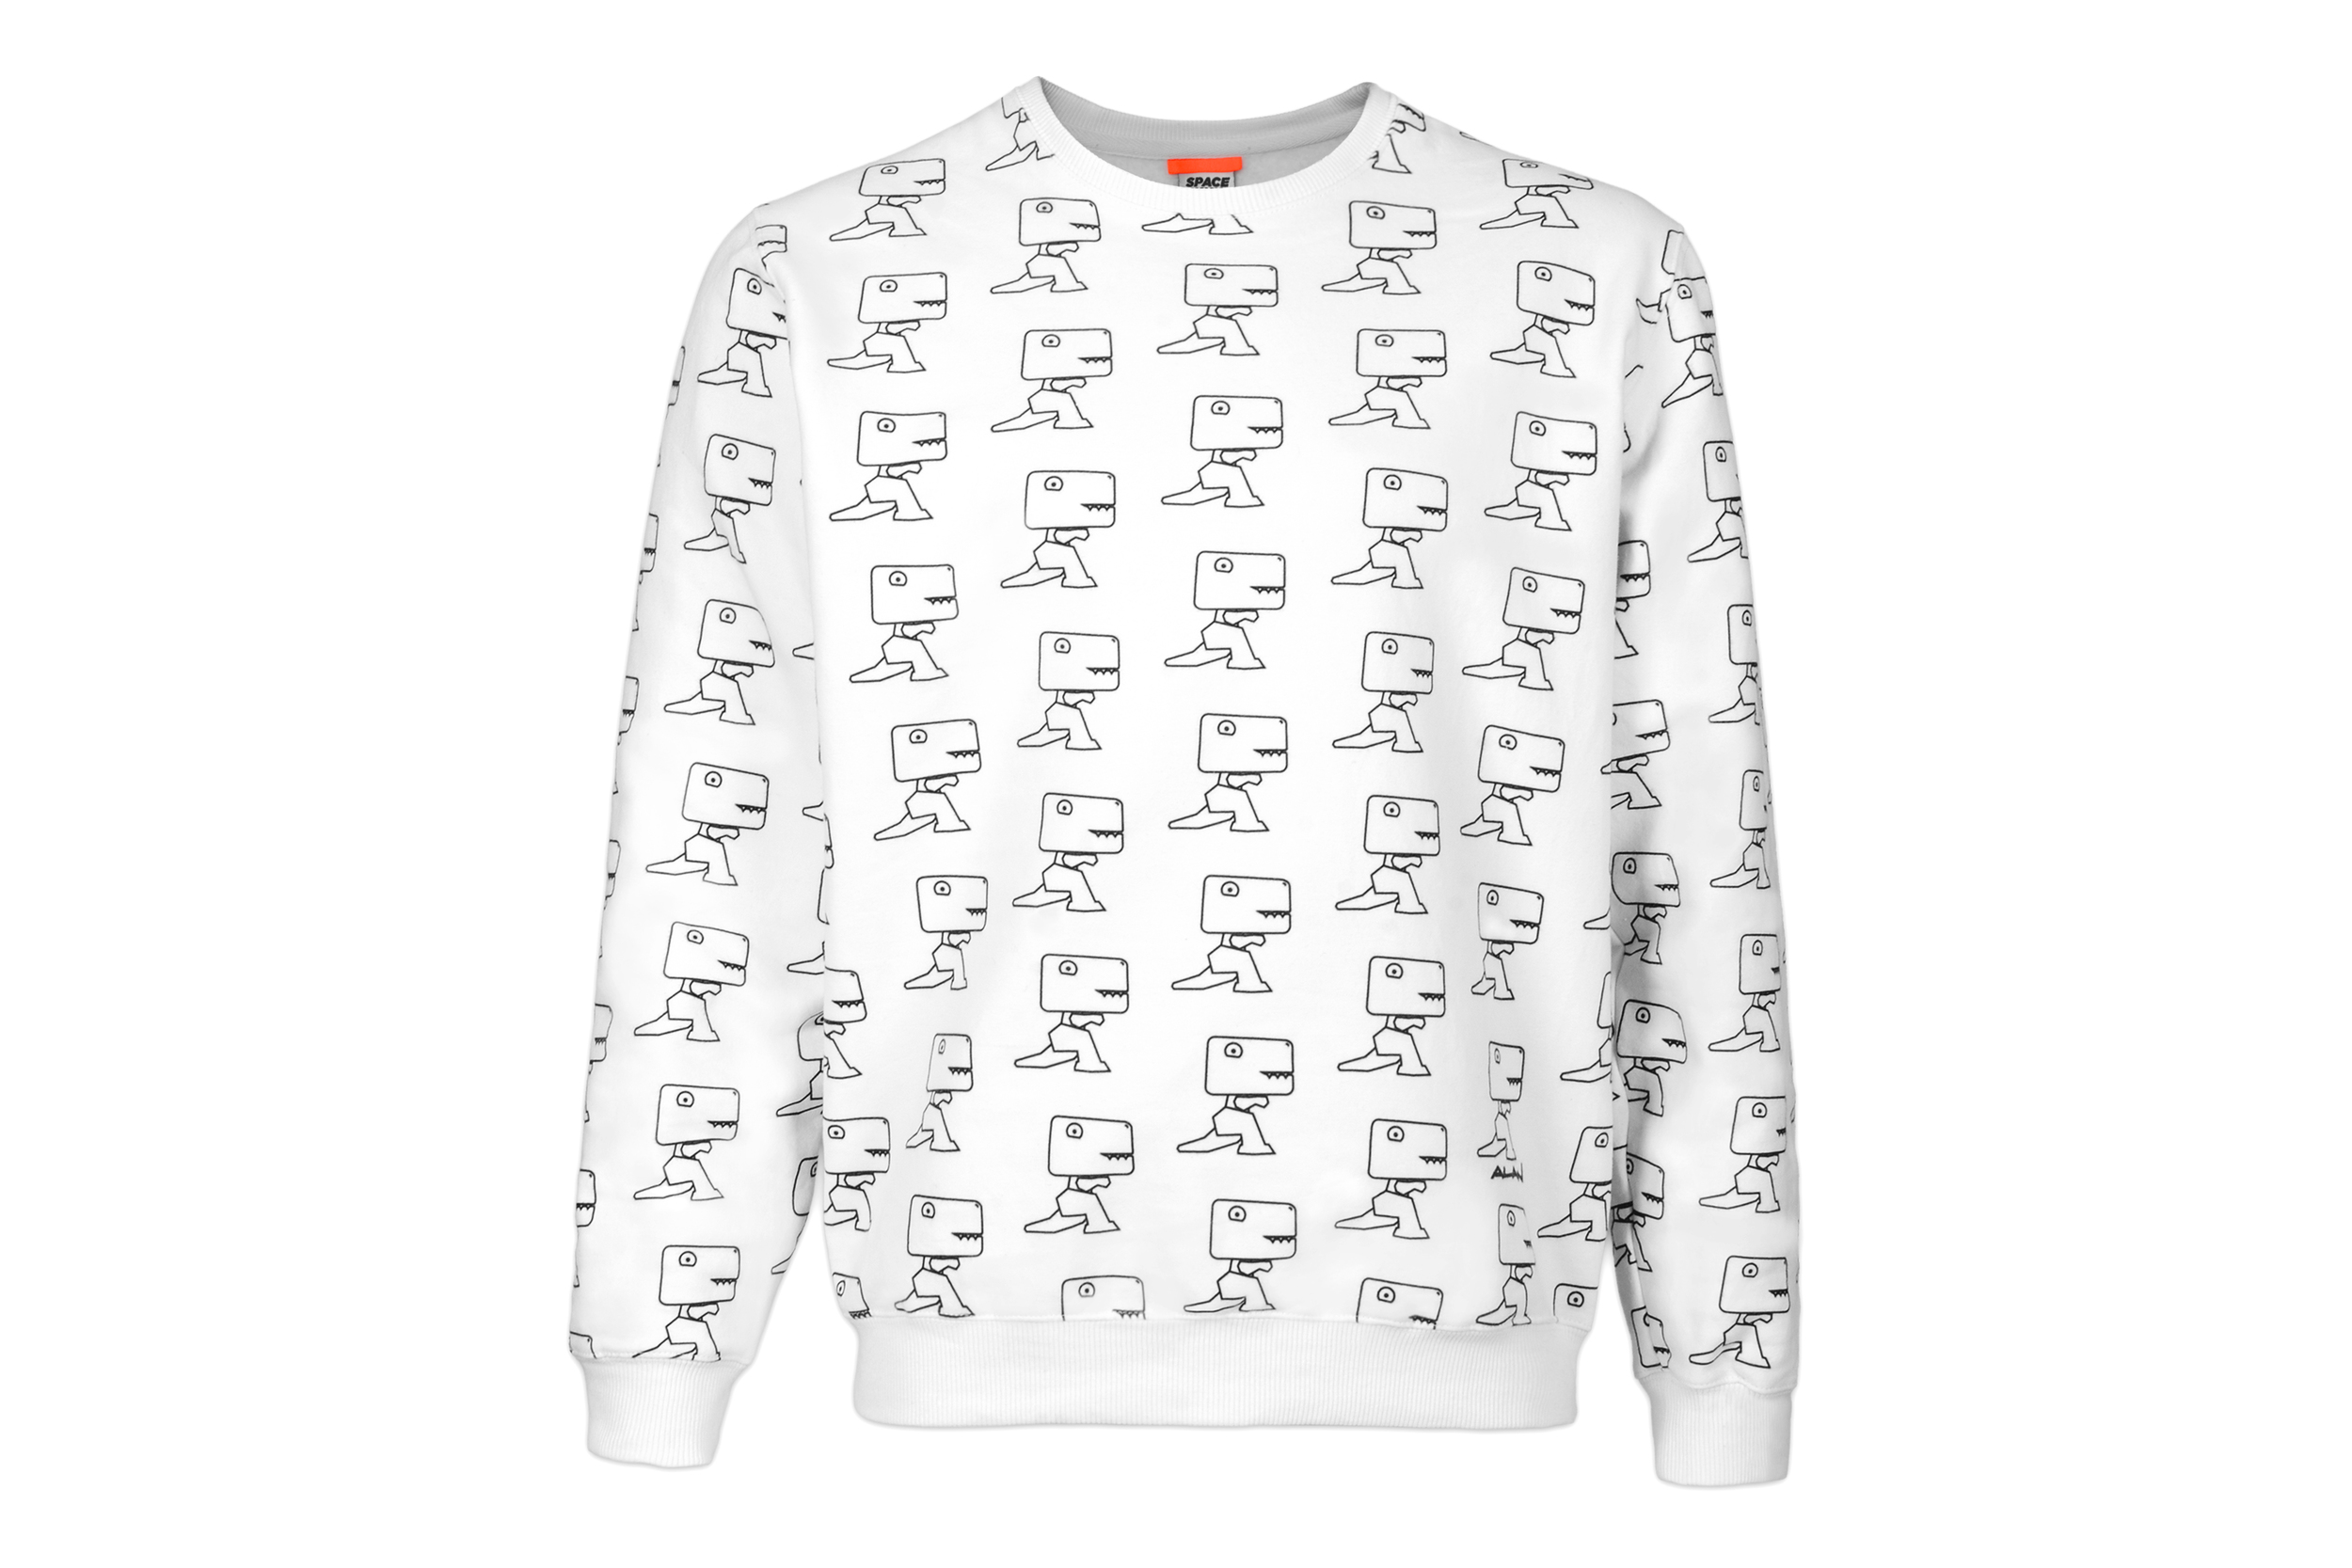 Rexamus_Jumper_Sweater_Front_Space Junk_2014.jpg